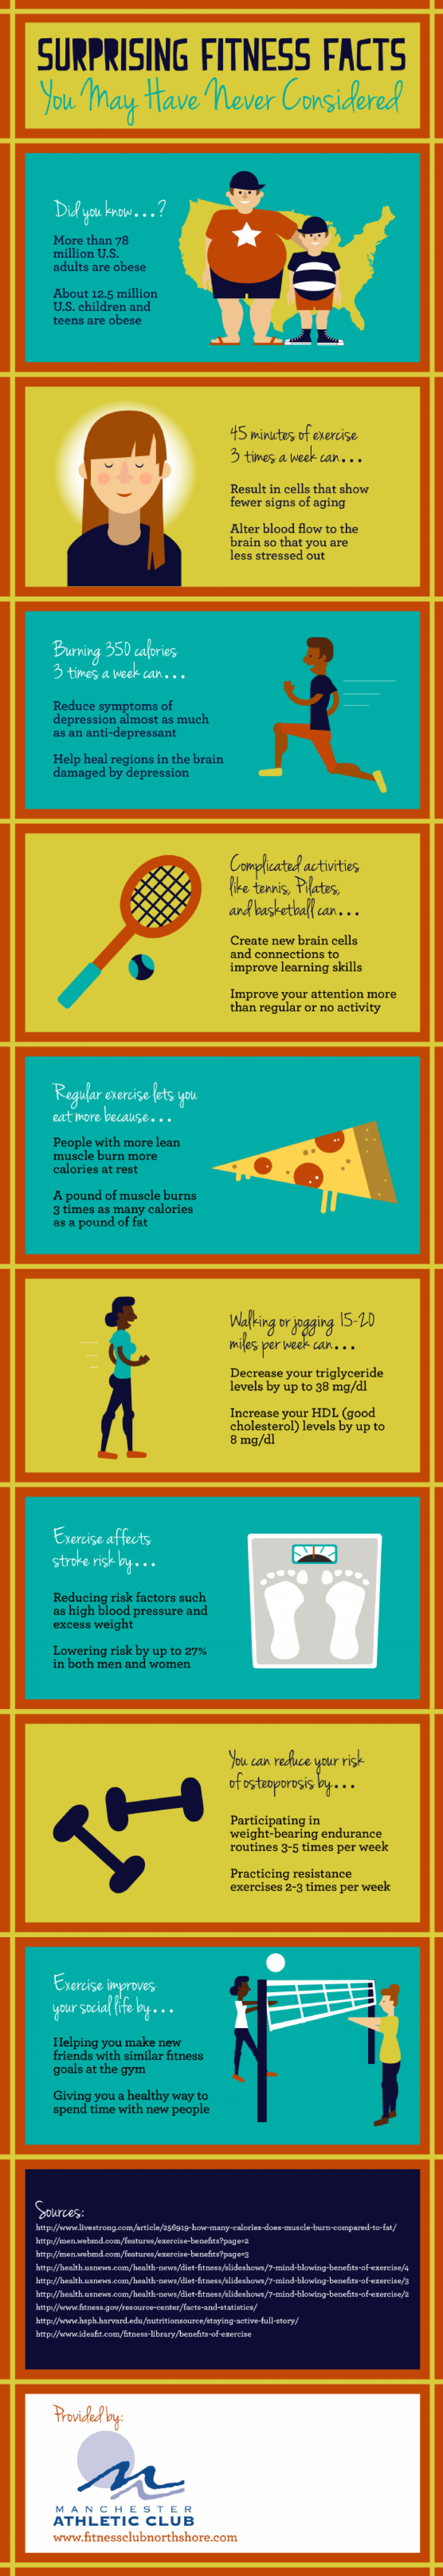 Surprising Fitness Facts You May Have Never Considered Infographic